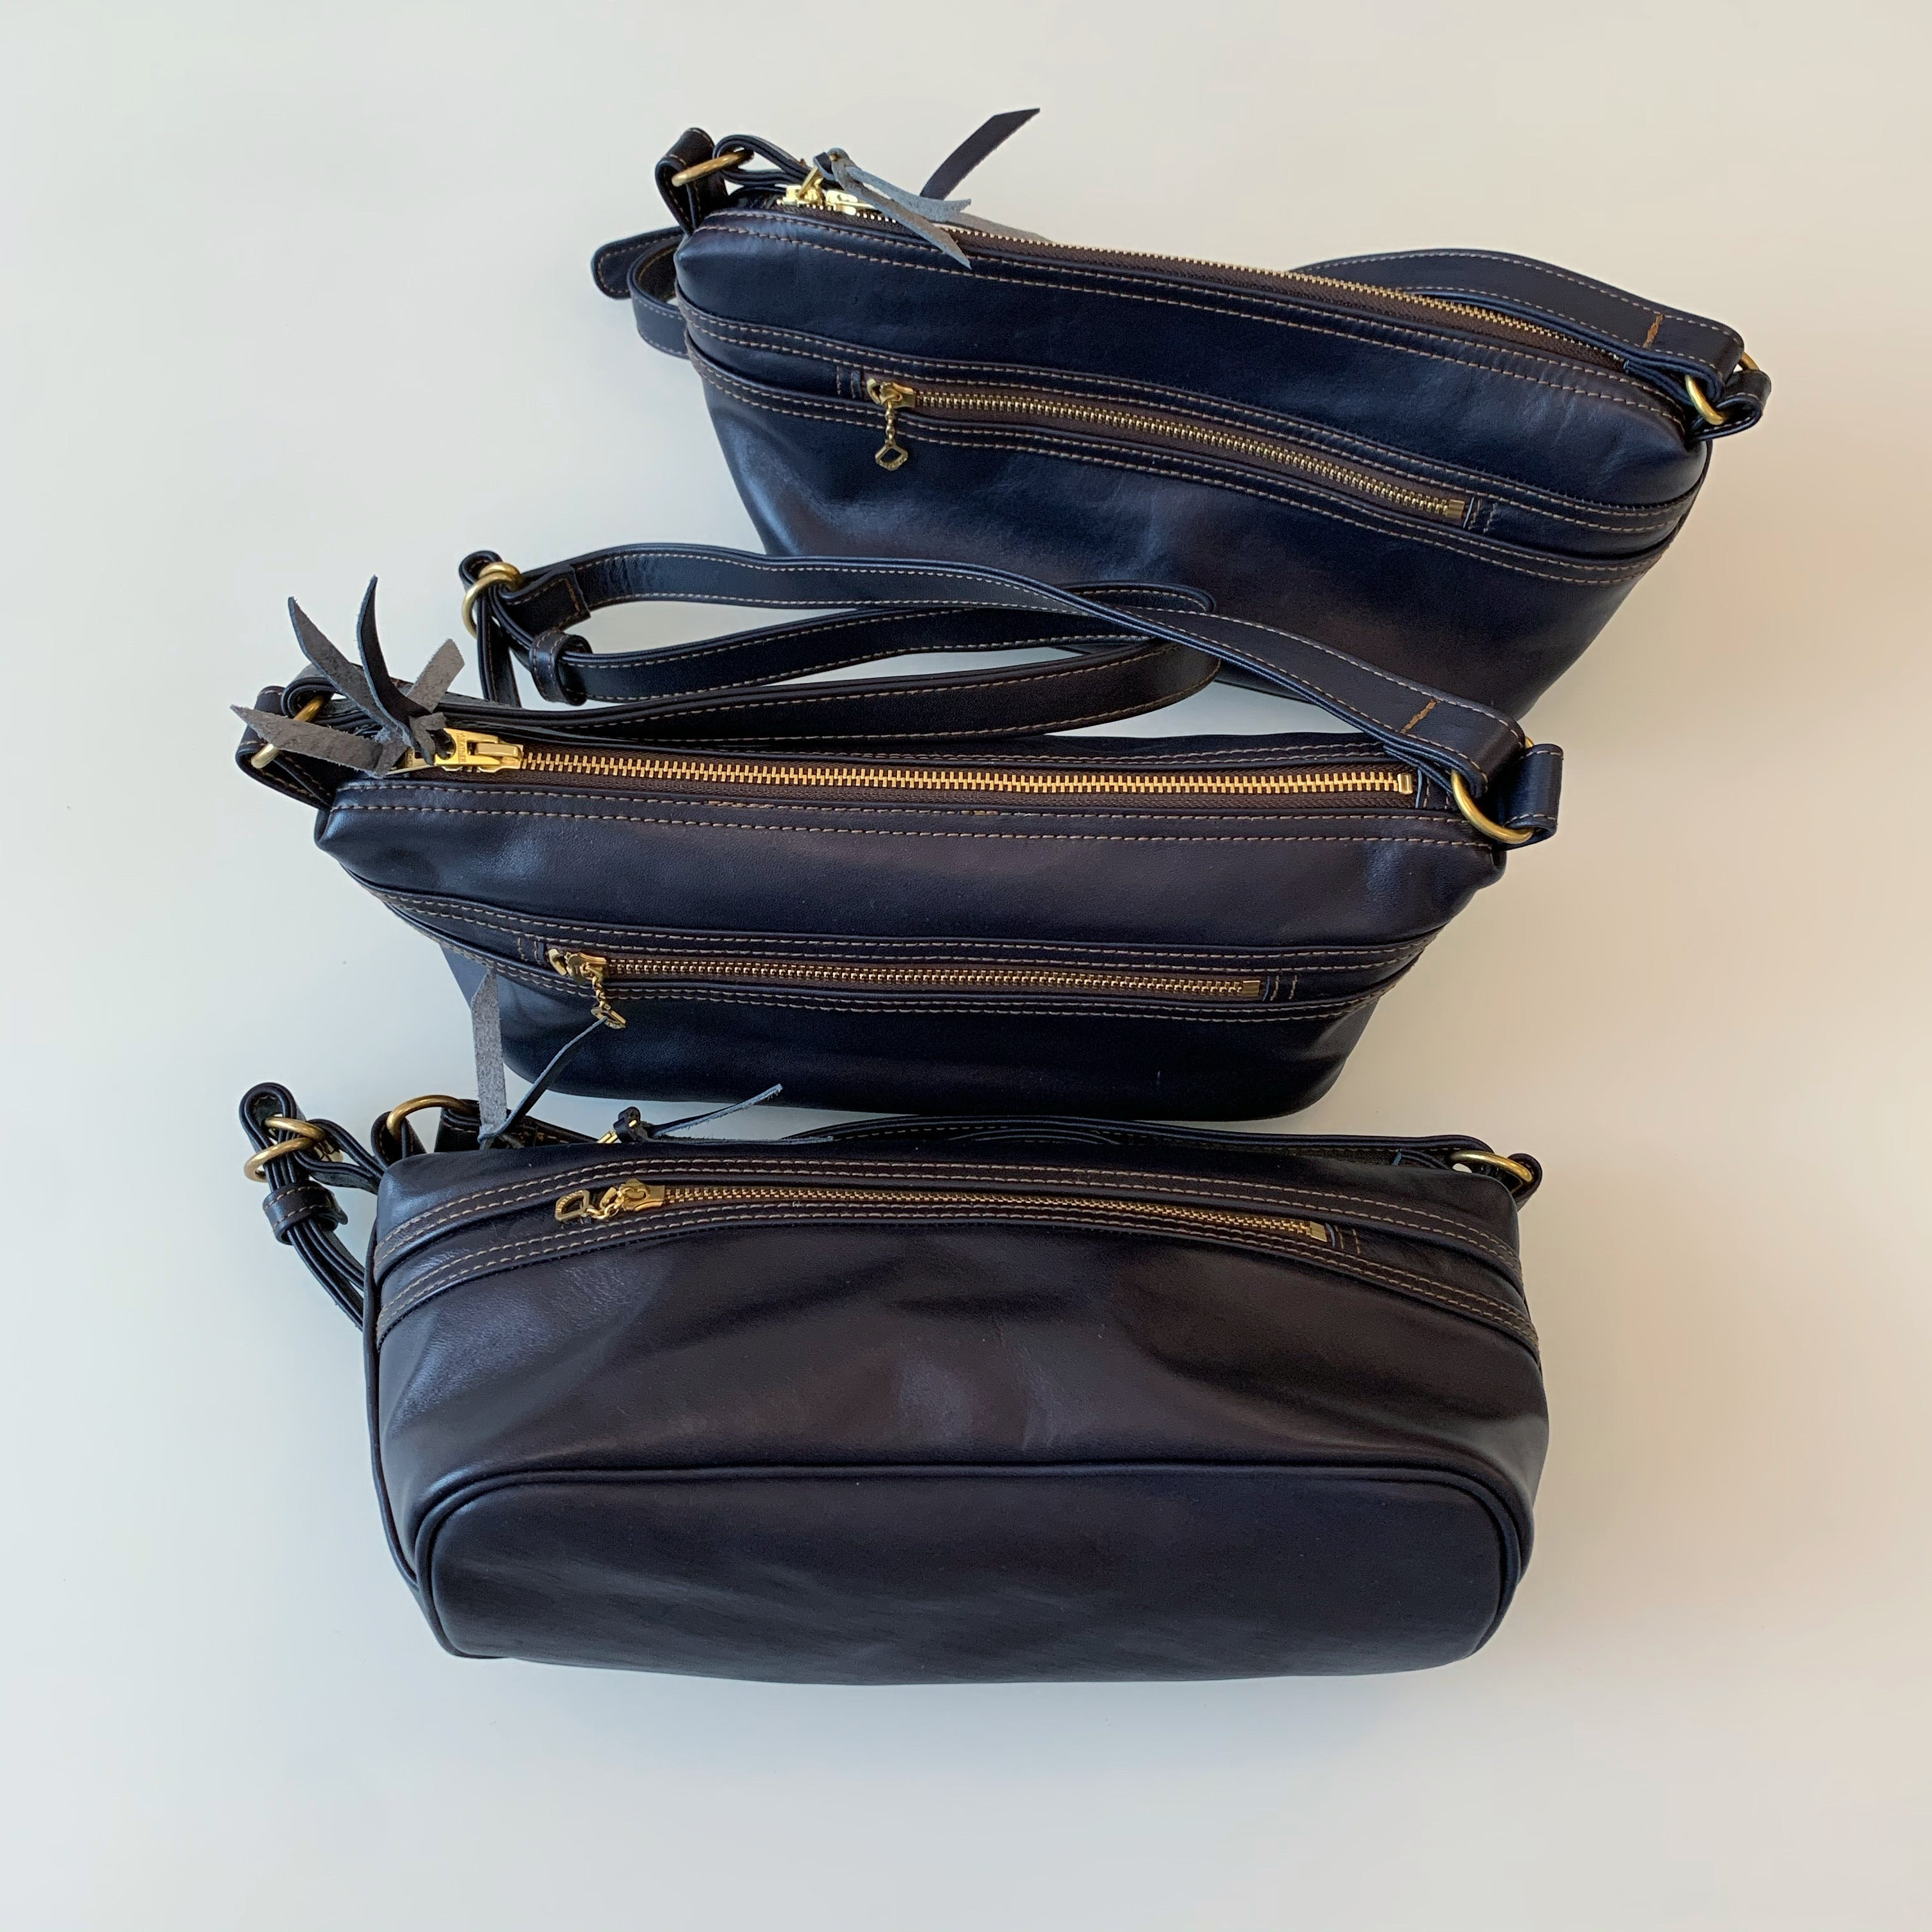 Indigo-Dyed Horsehide Shoulder Bag (BG-02)